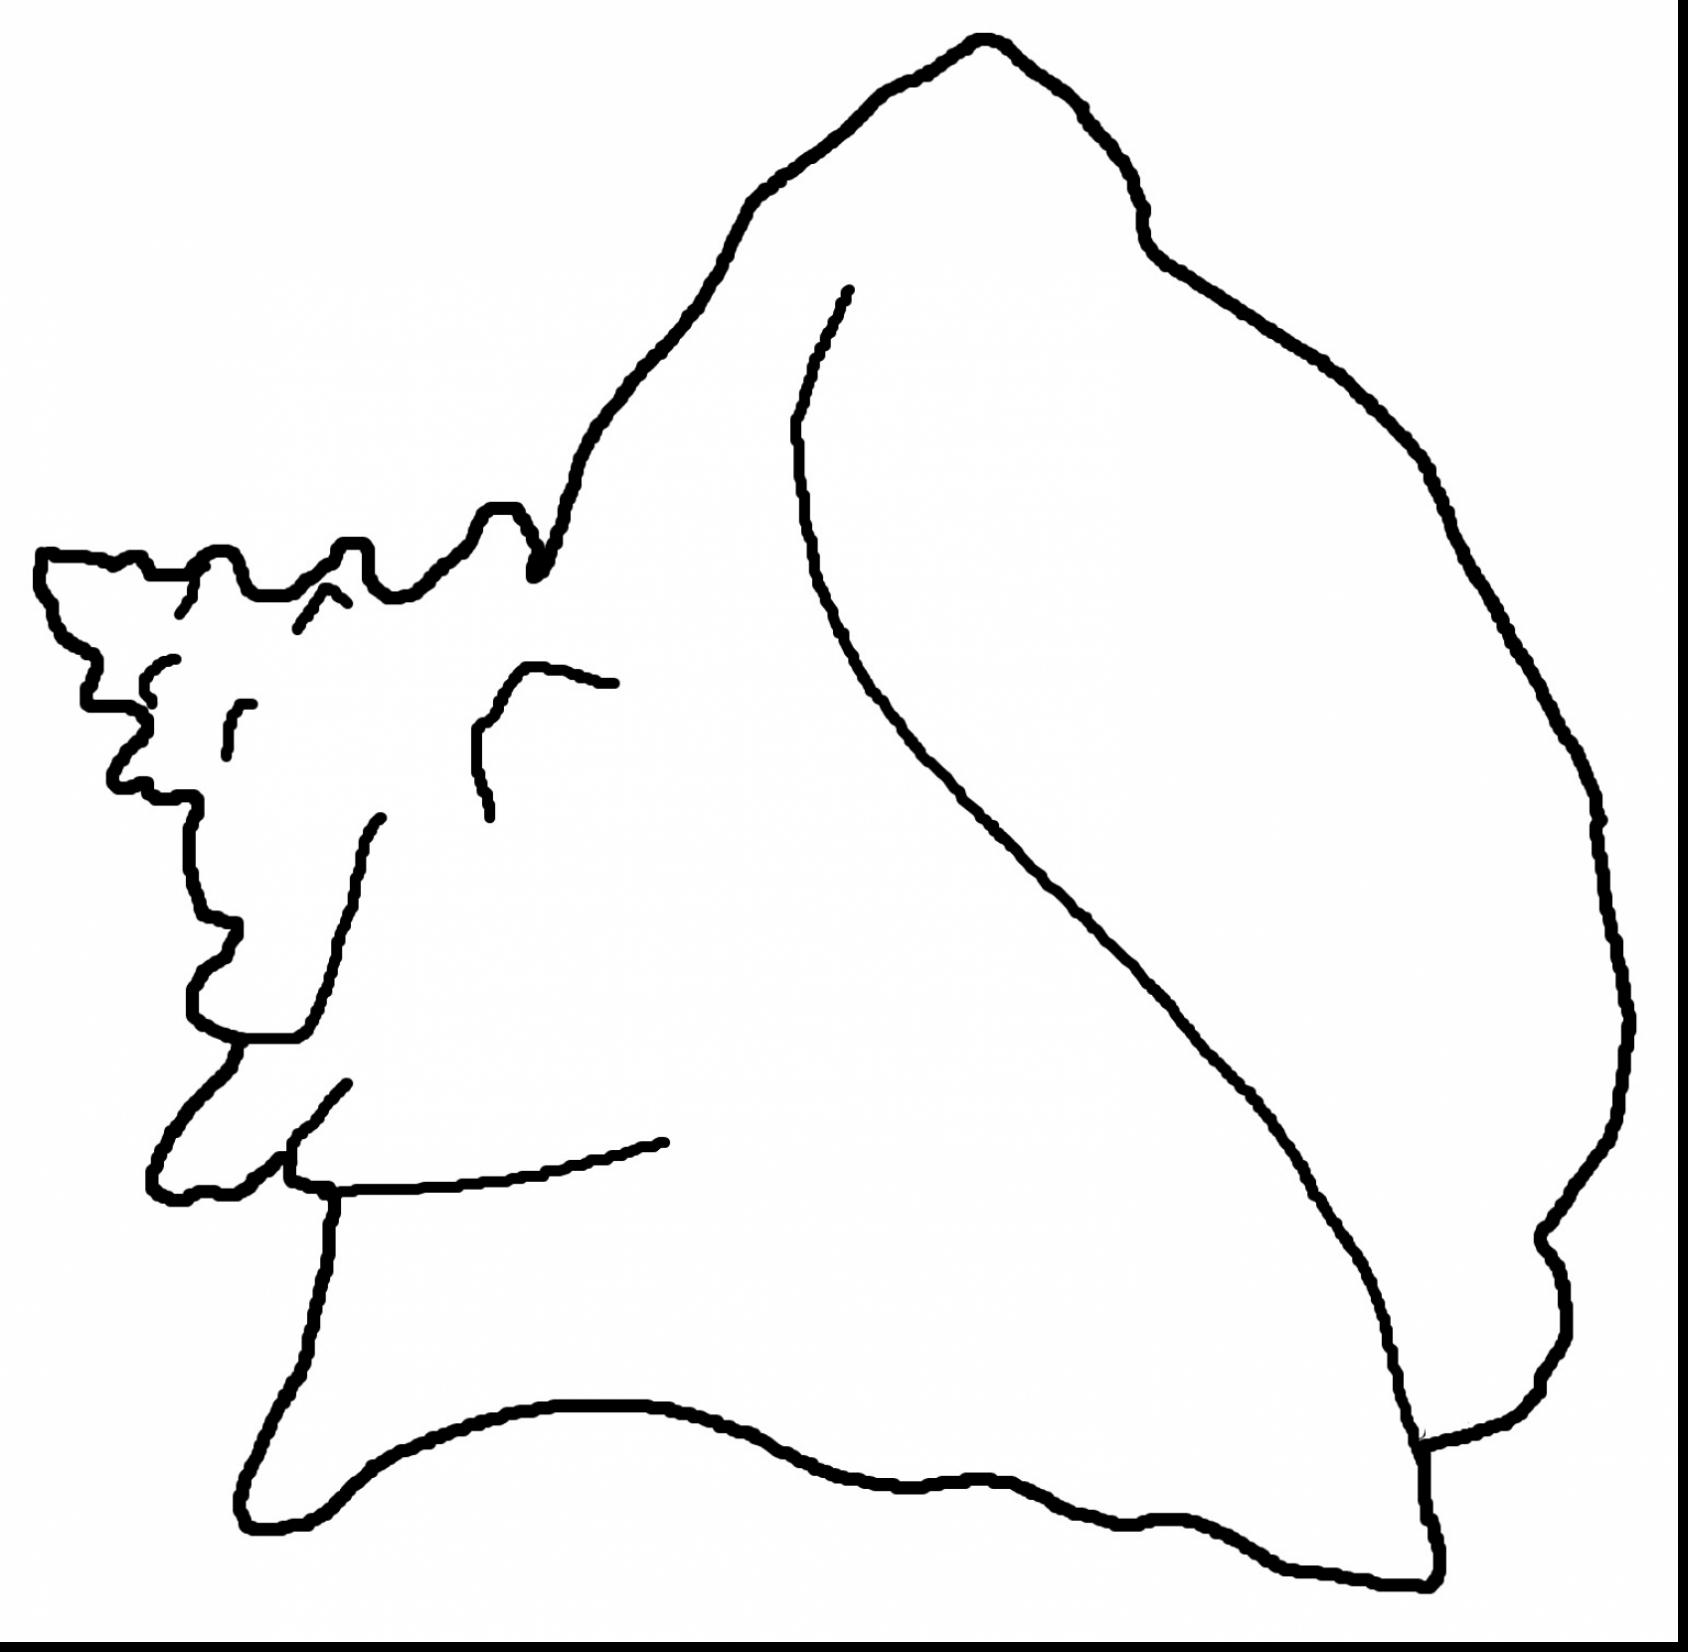 1688x1652 Terrific Conch Shell Coloring Page Printable With Seashell